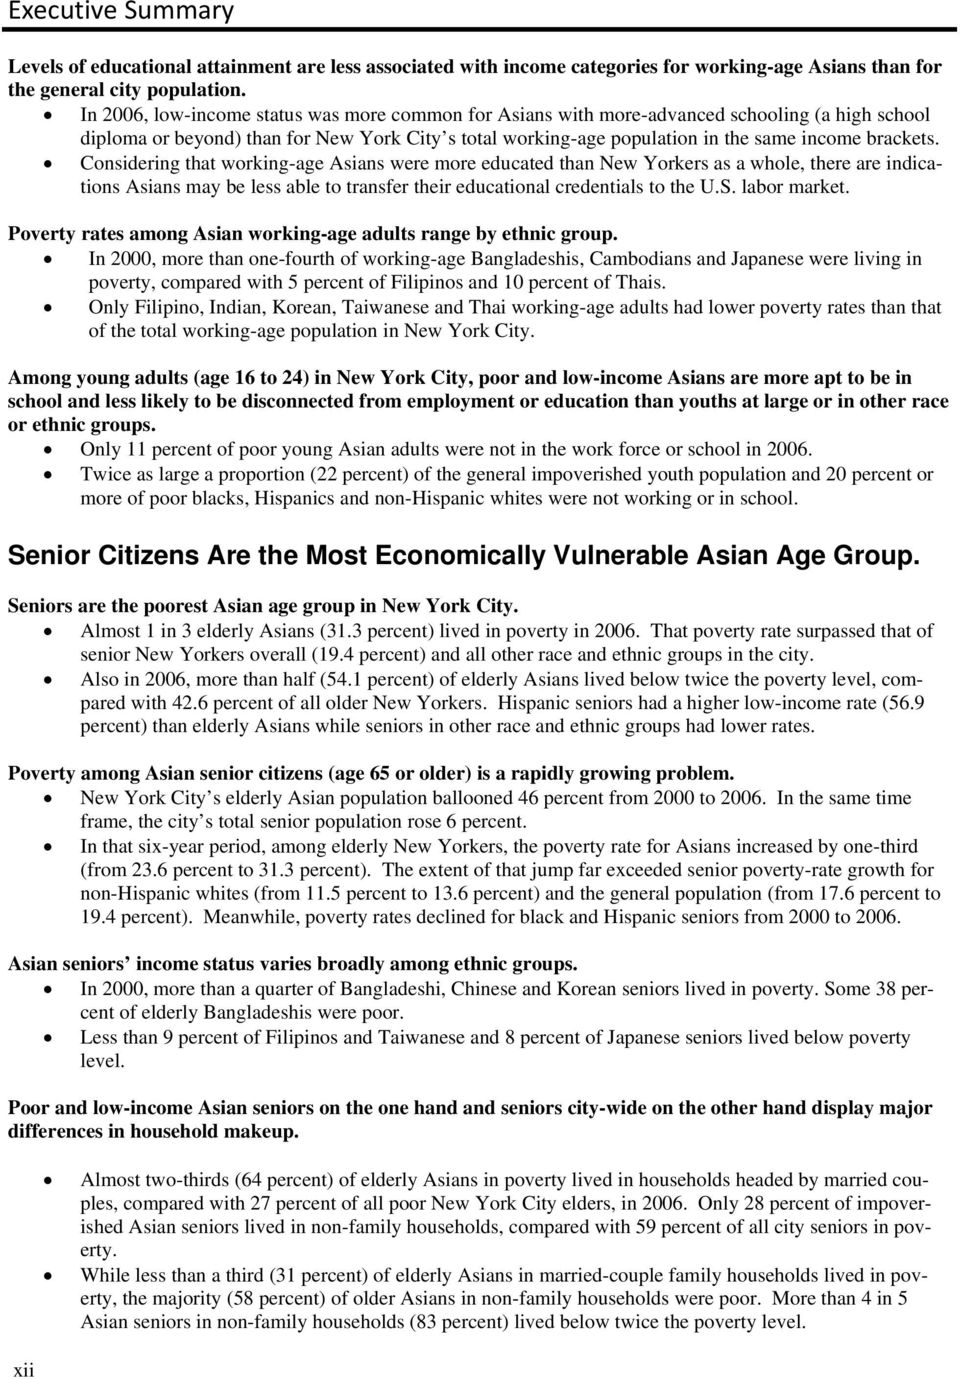 Considering that working-age Asians were more educated than New Yorkers as a whole, there are indications Asians may be less able to transfer their educational credentials to the U.S. labor market.